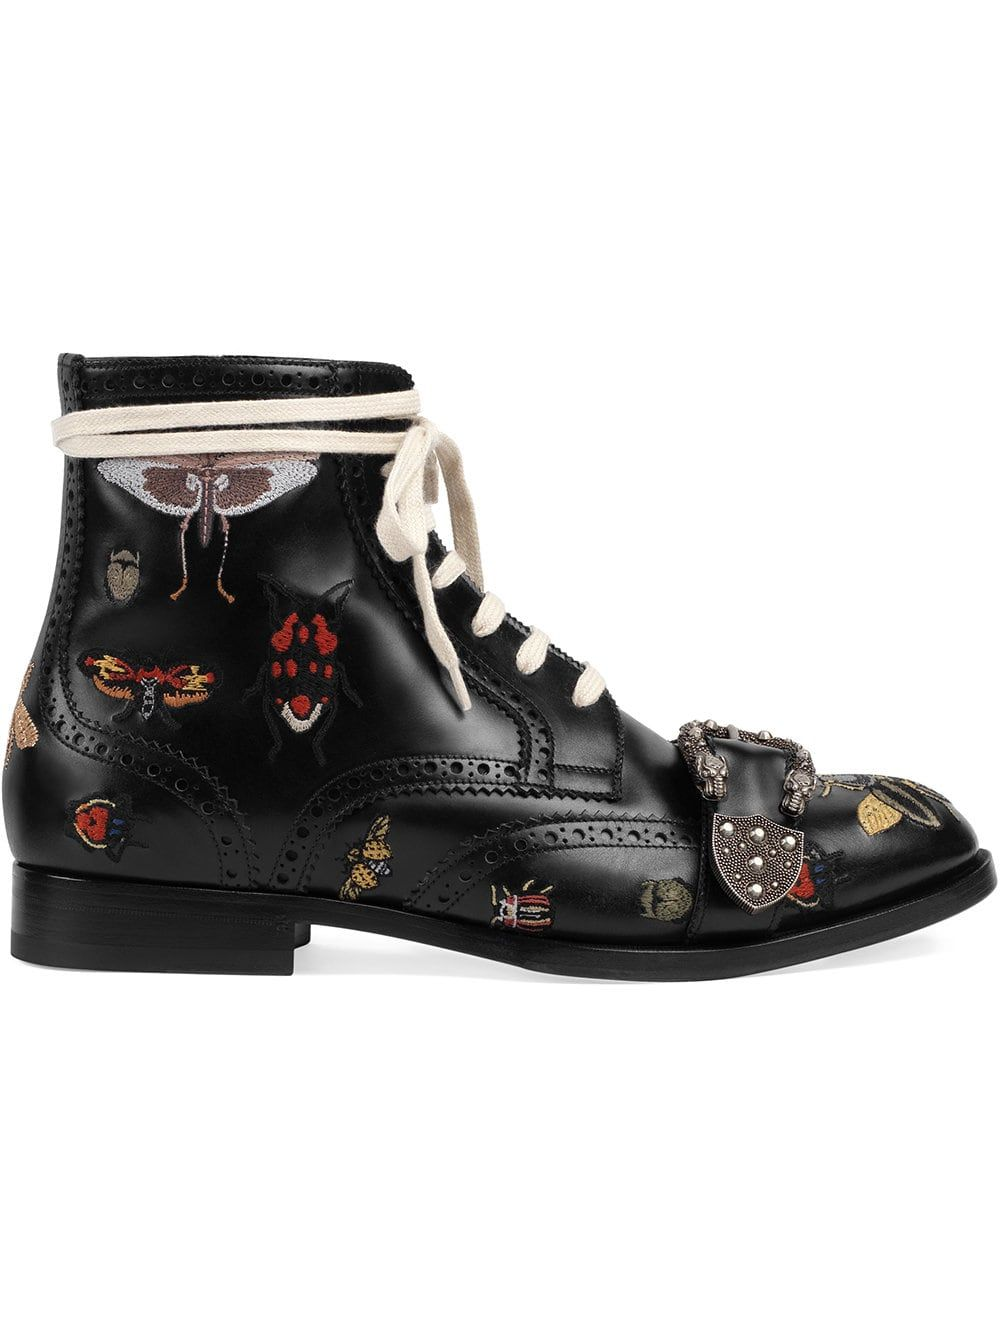 1ab5d616e Gucci botas casuales bordadas Queercore | Performance outfits ...